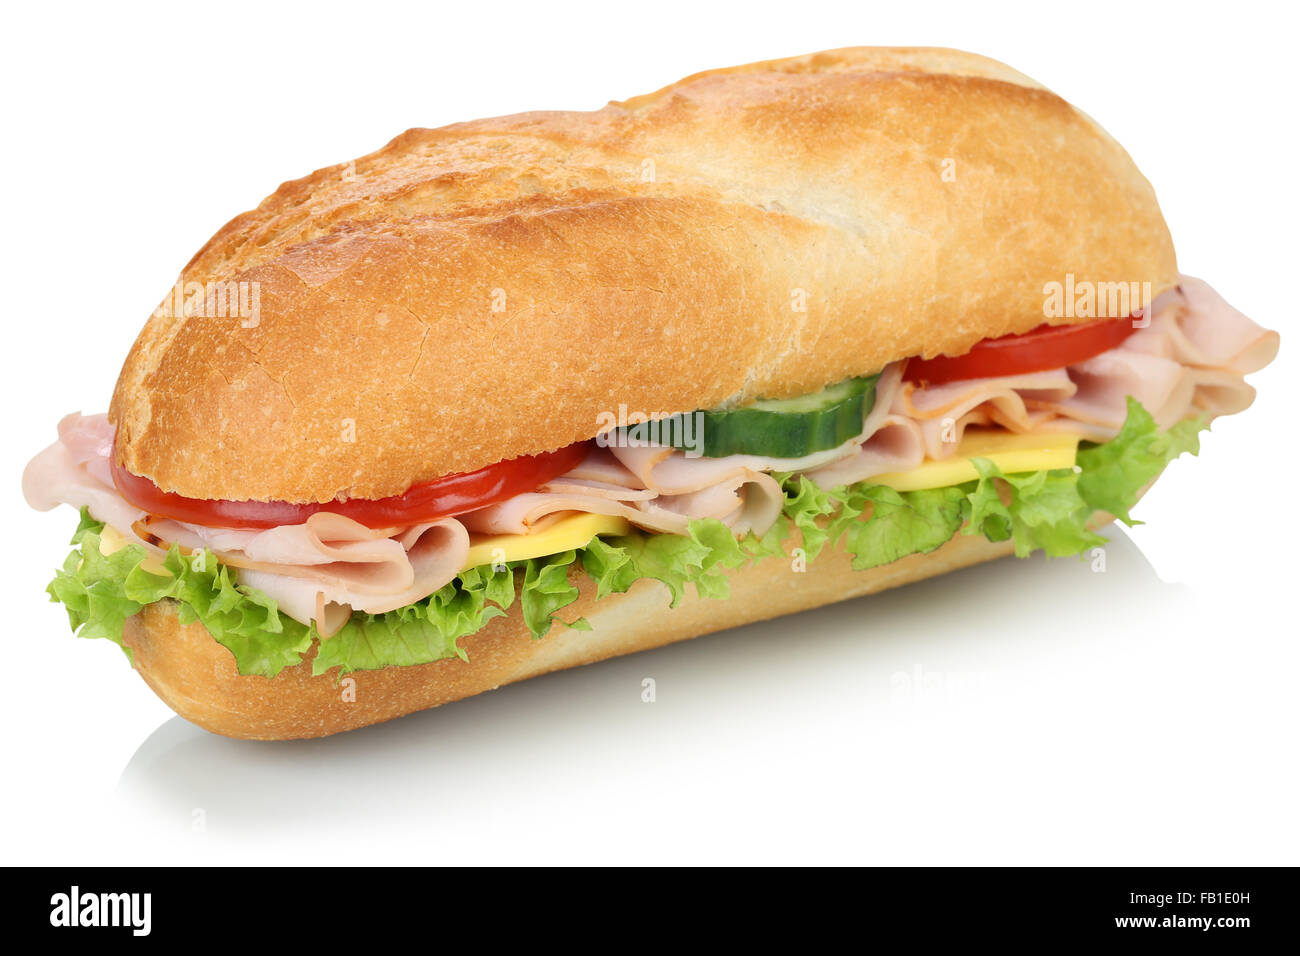 Sub deli sandwich baguette with ham, cheese, tomatoes and lettuce isolated on a white background - Stock Image